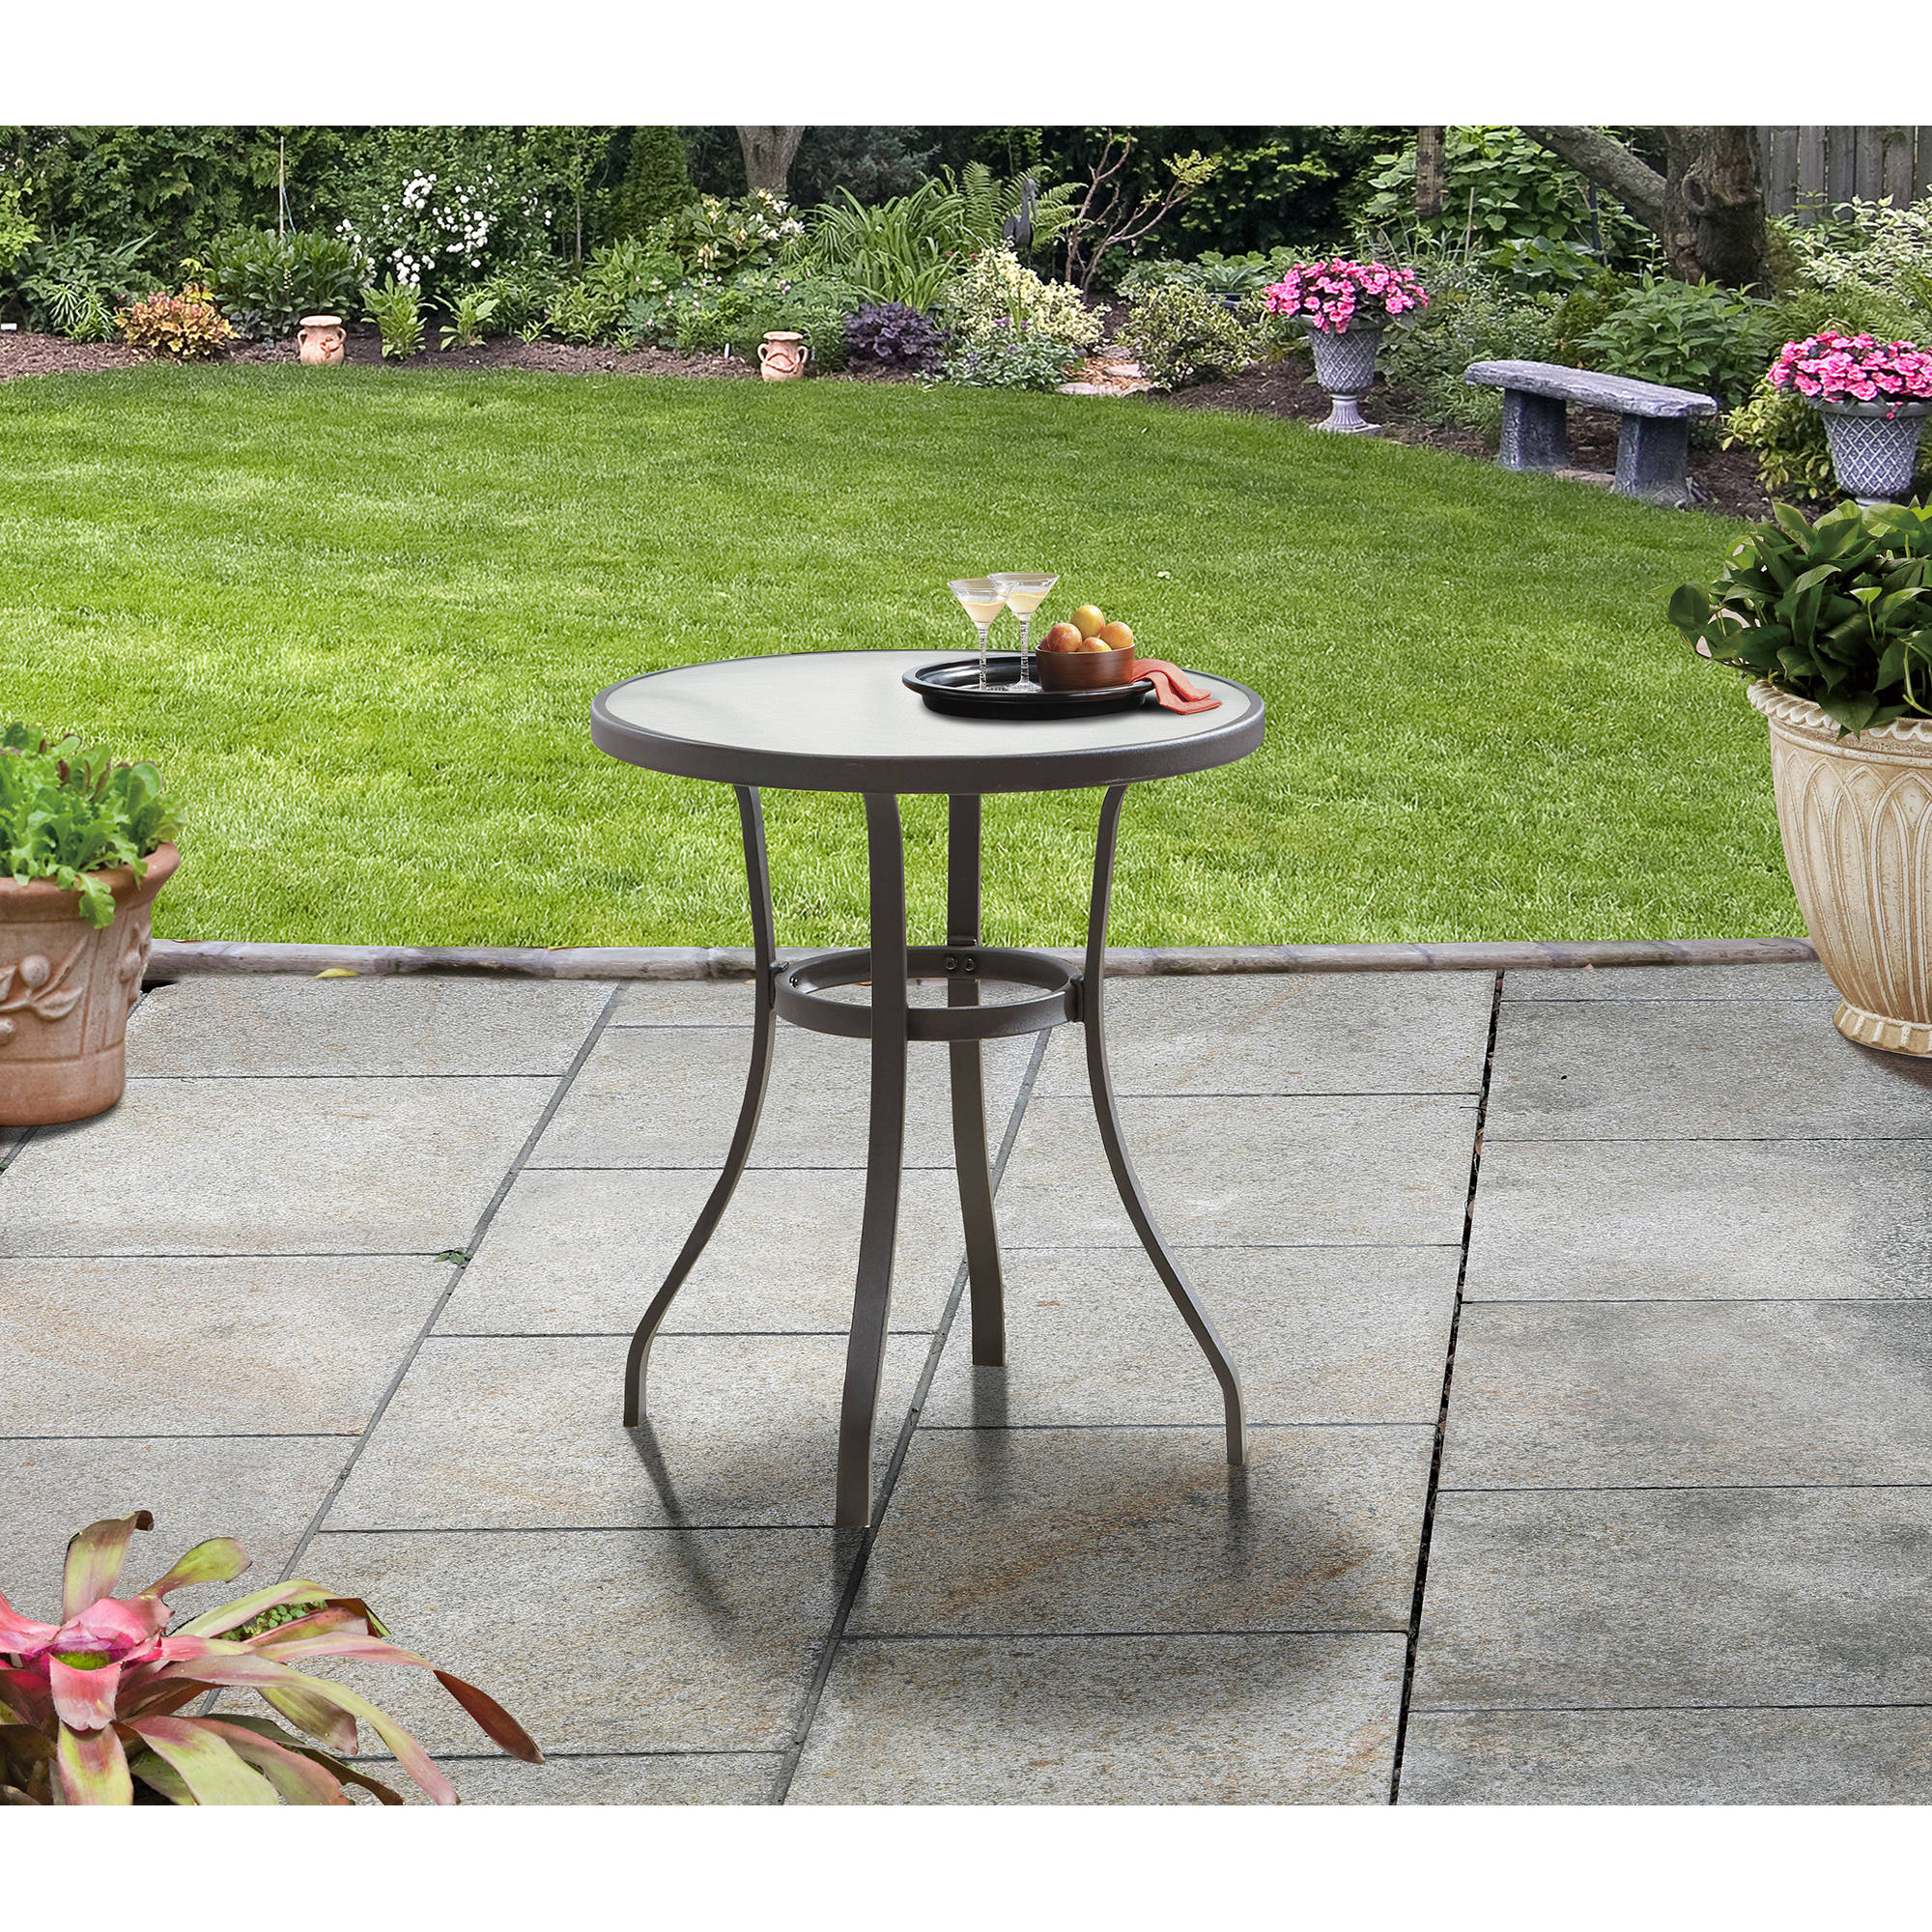 Mainstays Heritage Park Round Bistro Table, Brown